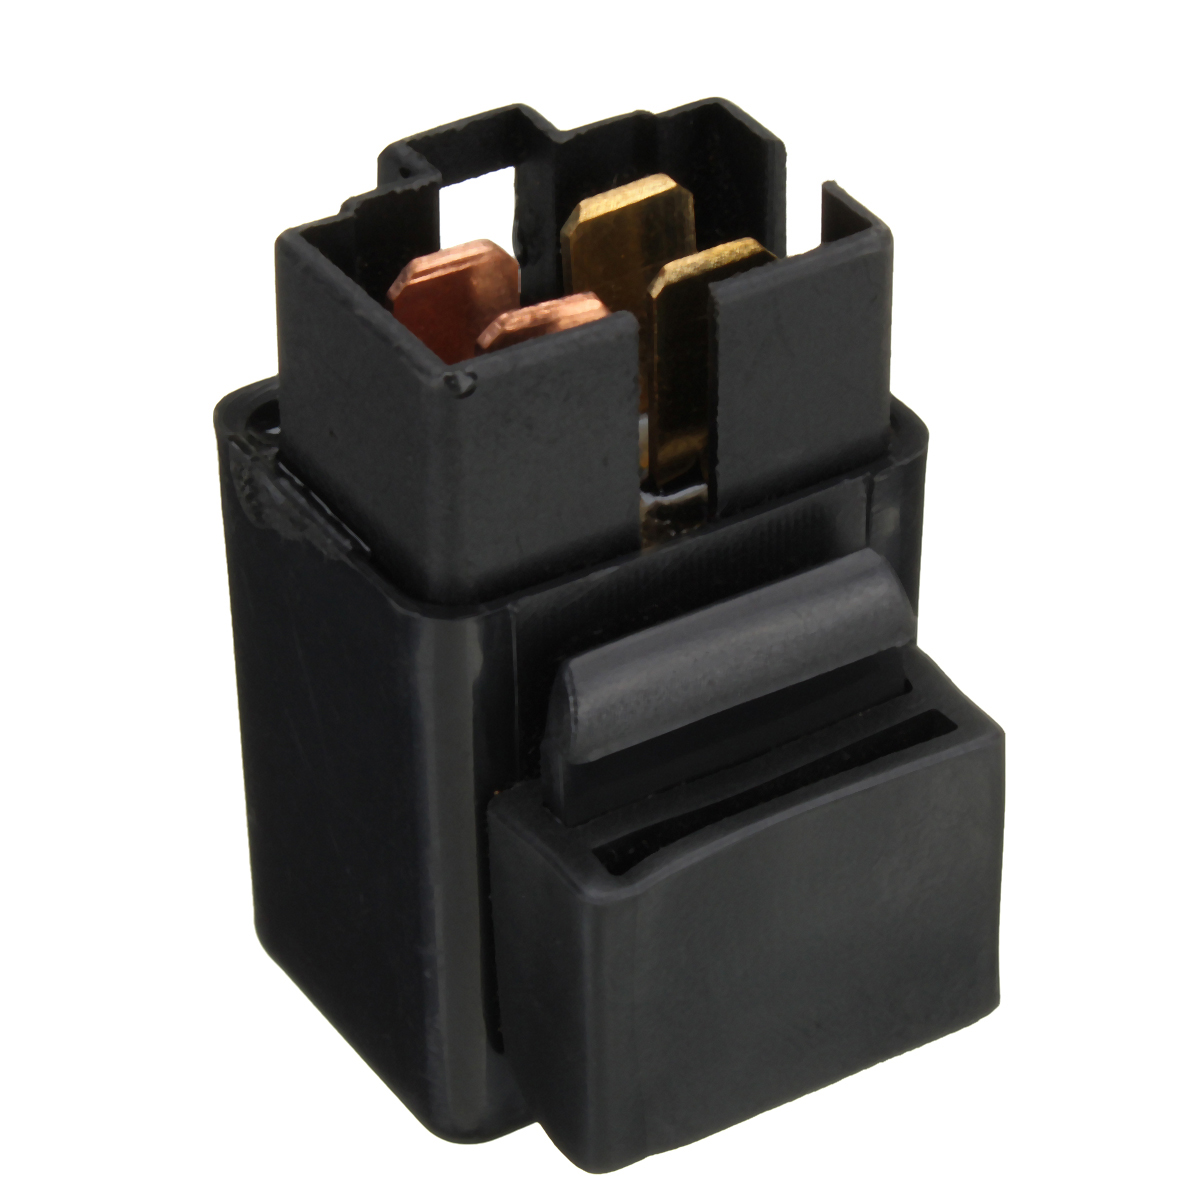 Image 3 - Starter Relay Solenoid Replacement for Yamaha 29U 81950 92 00 29U 81950 93 00-in Motorbike Ingition from Automobiles & Motorcycles